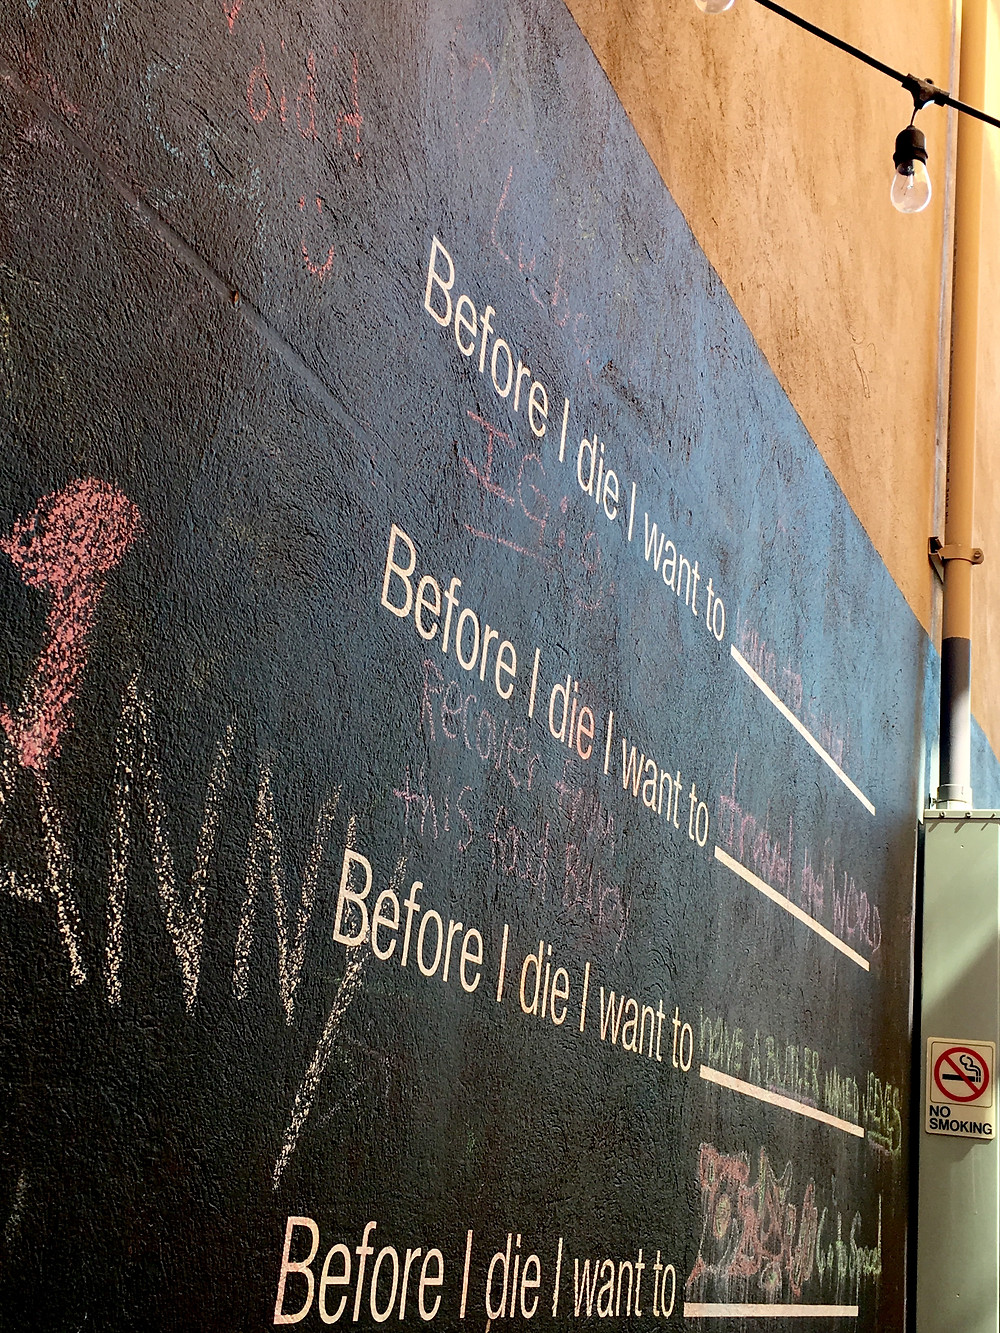 An interactive wall at the Redeye Cafe in Montclair NJ.